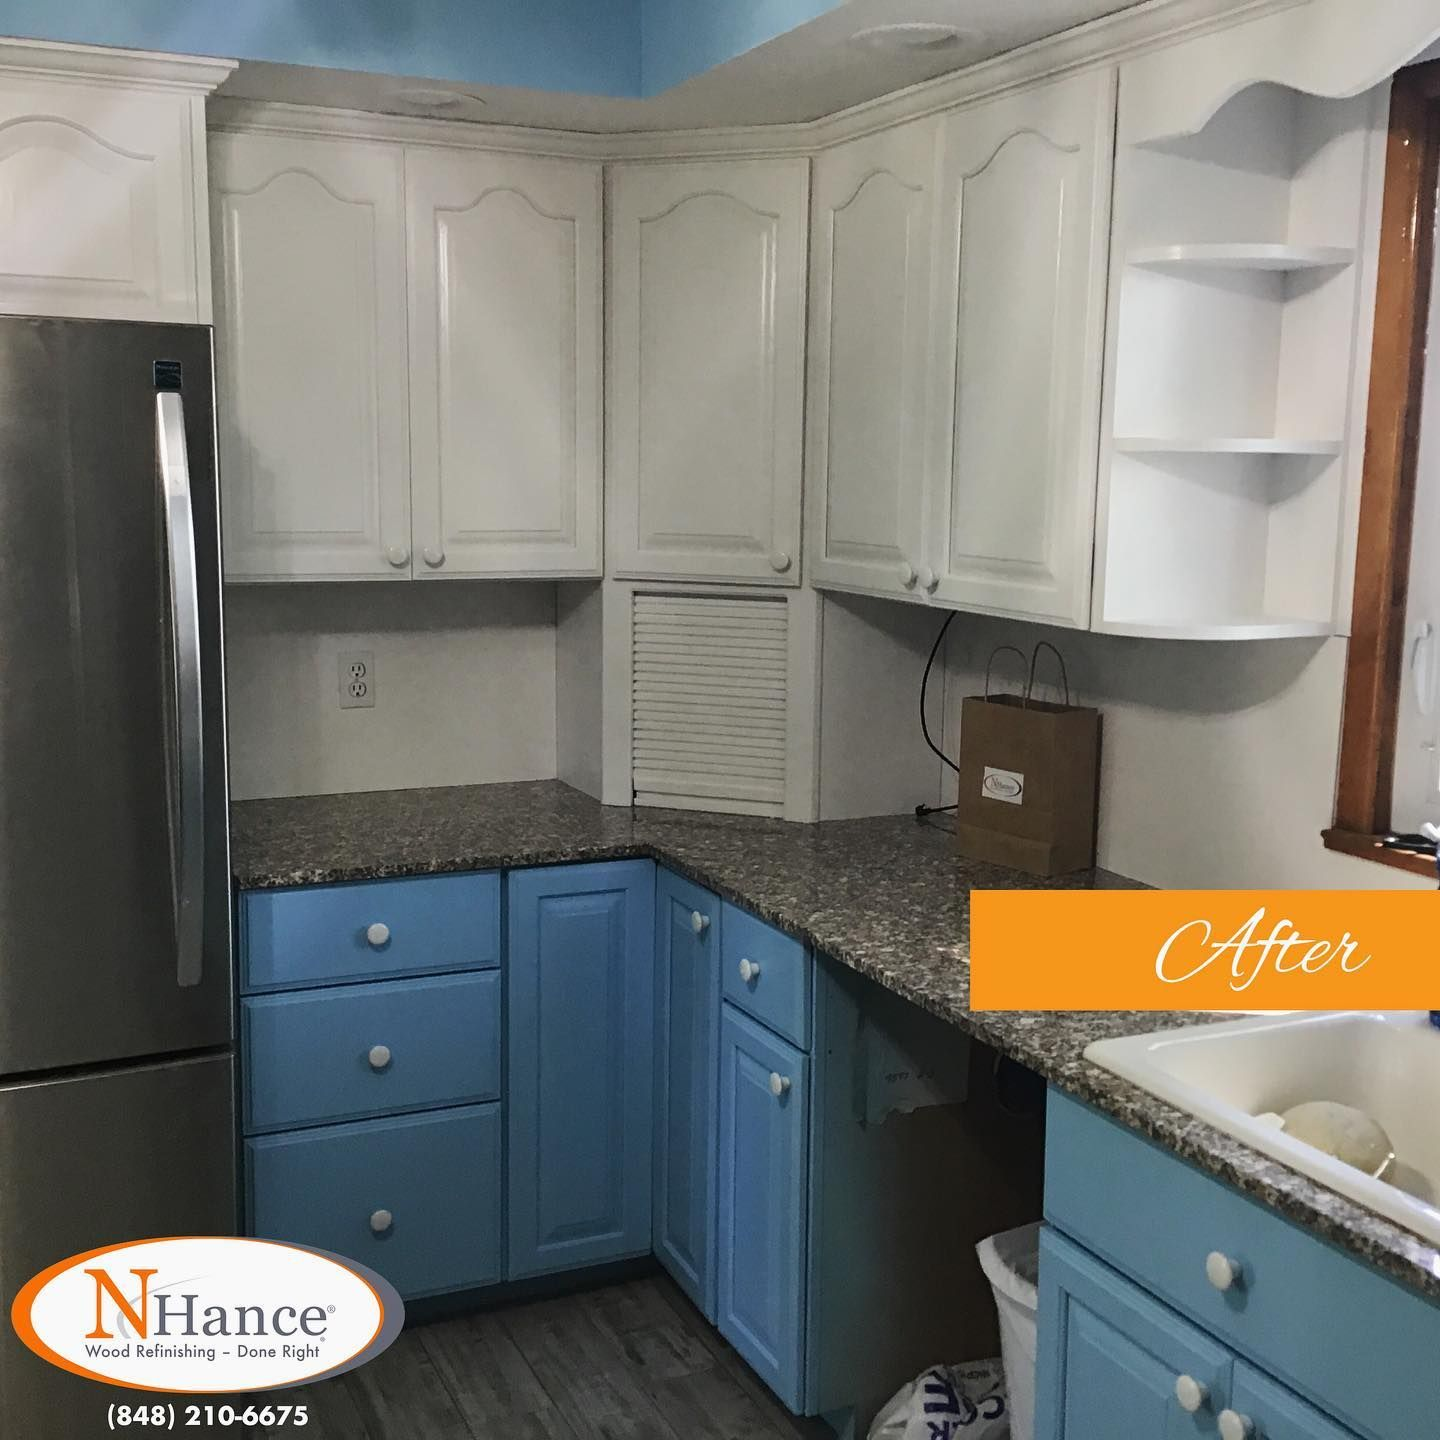 These Golden Oak Cabinets In This Edisonnj Kitchen Were Given The Update They Needed With A Cabinetcolorchange From In 2020 Oak Cabinets Refinishing Cabinets Cabinet